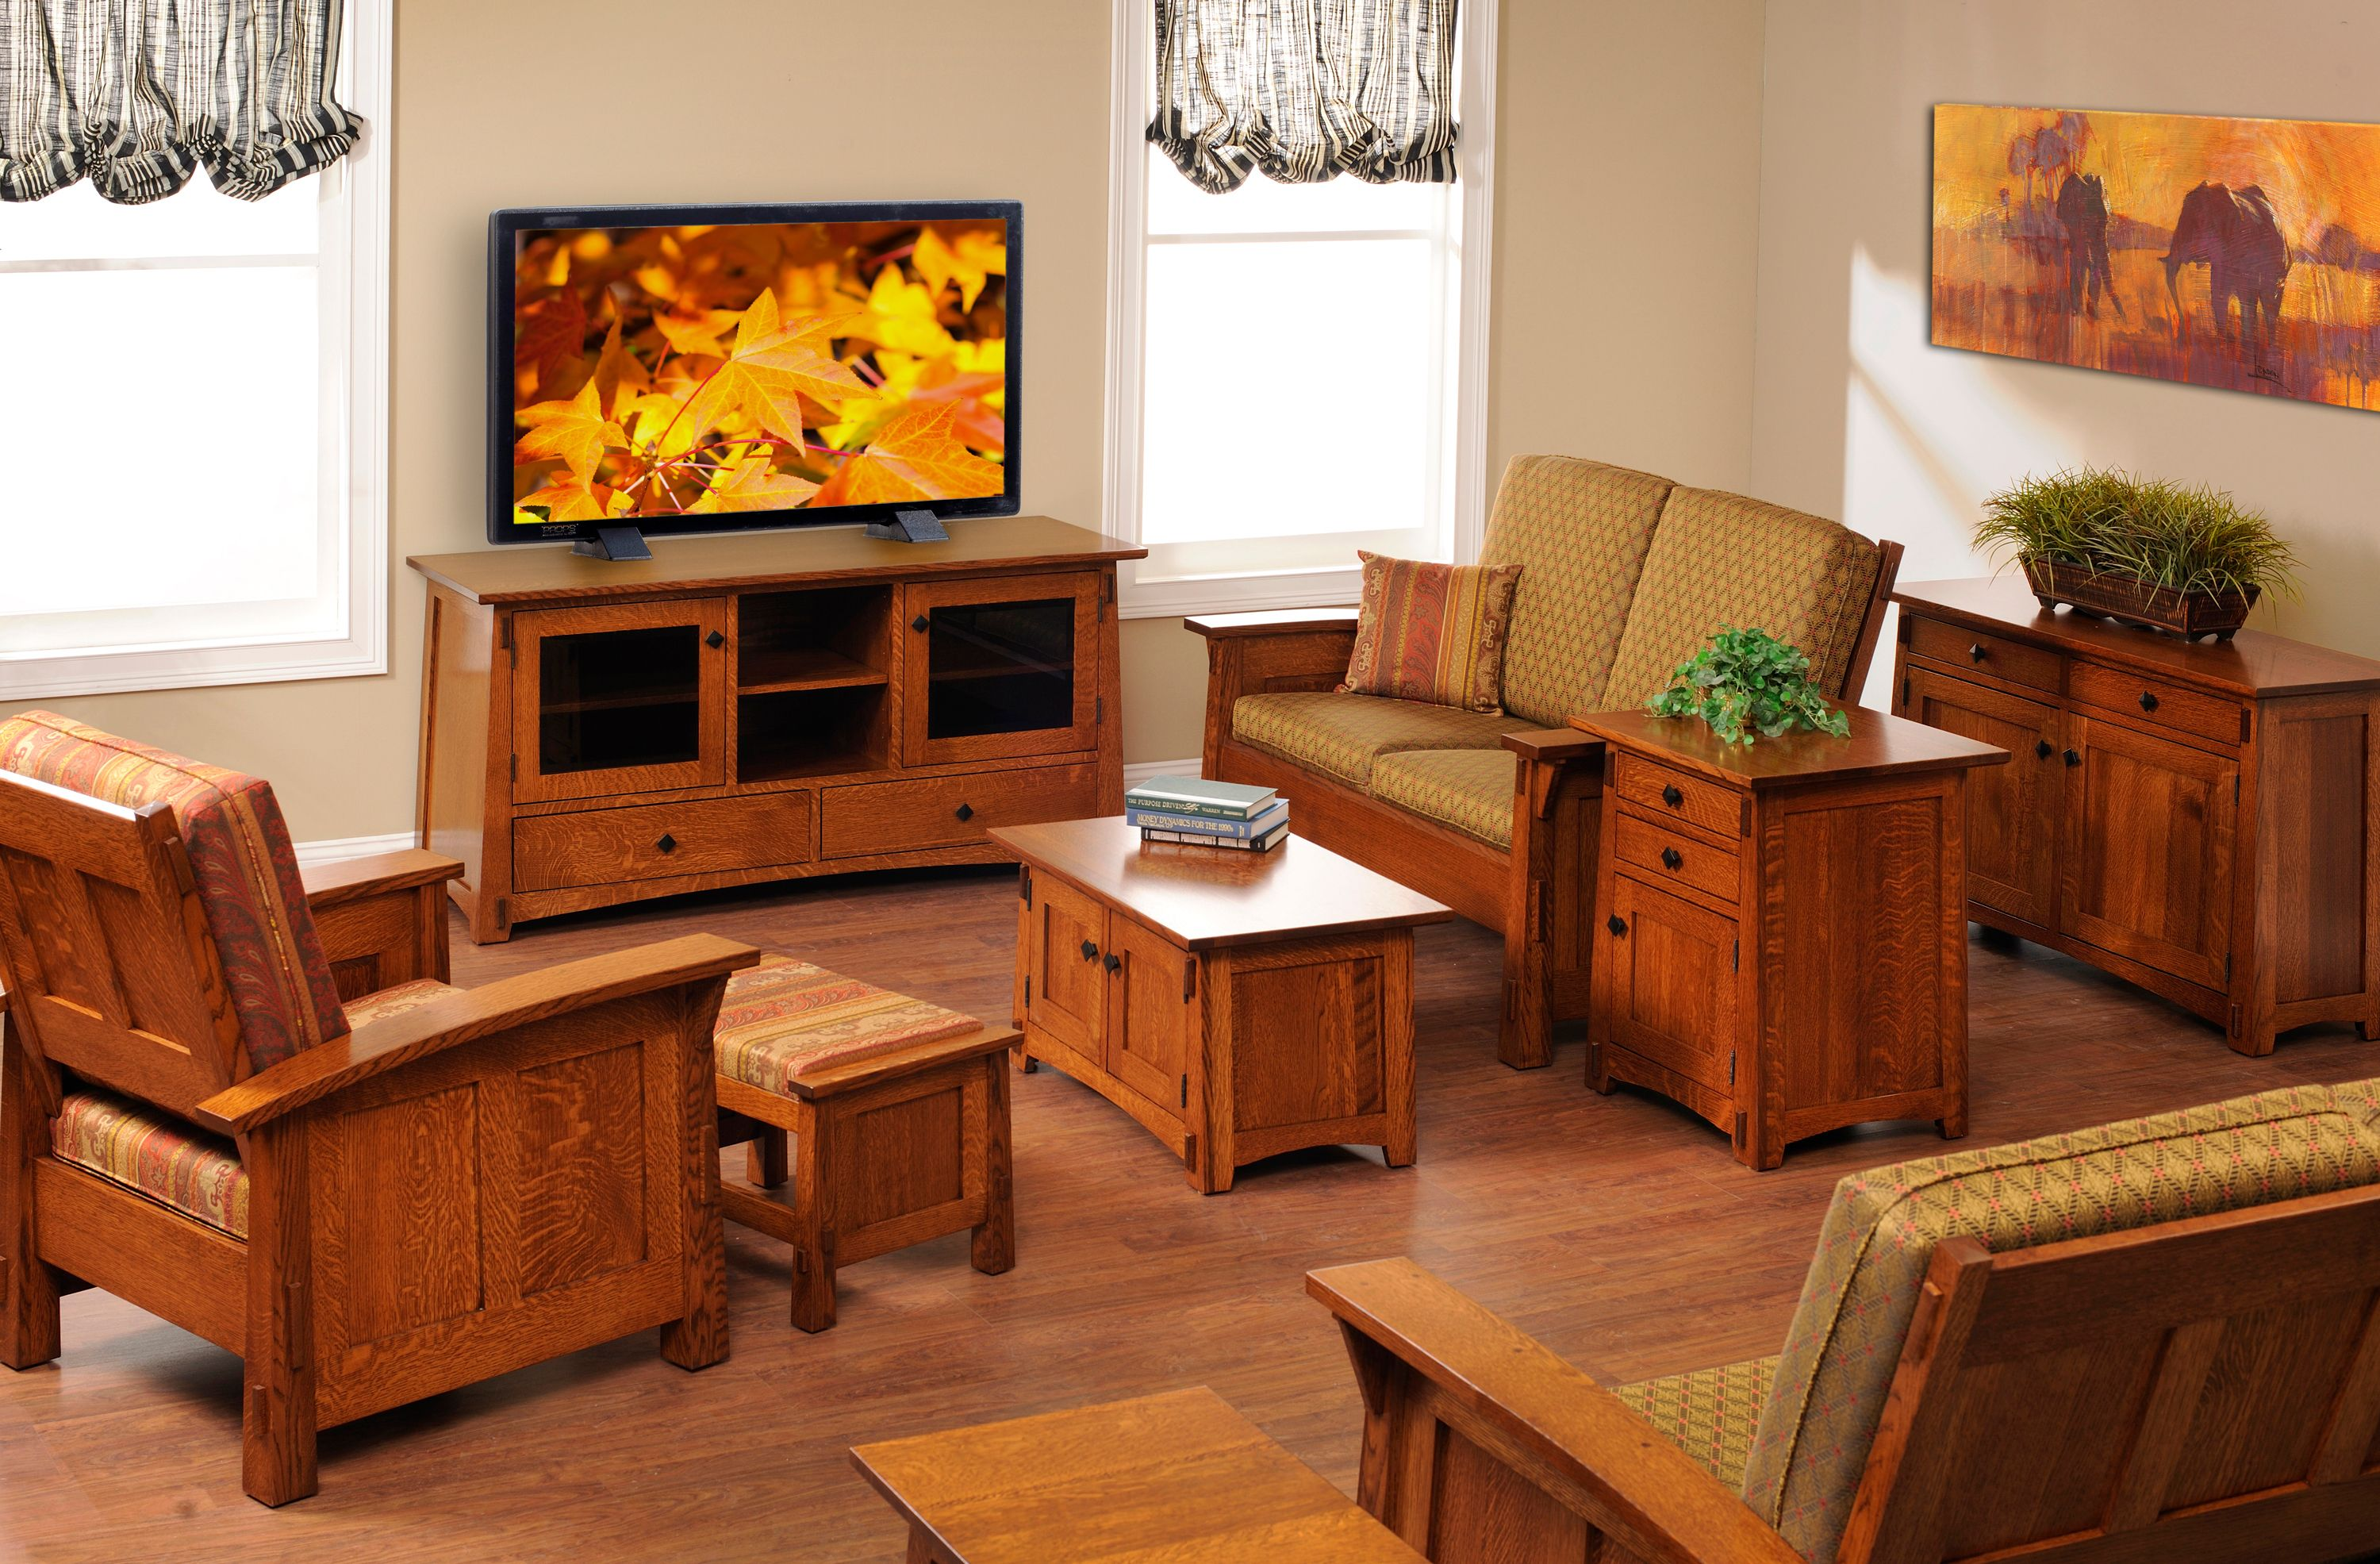 olde shaker collection - featuring occasional tables, tv stands